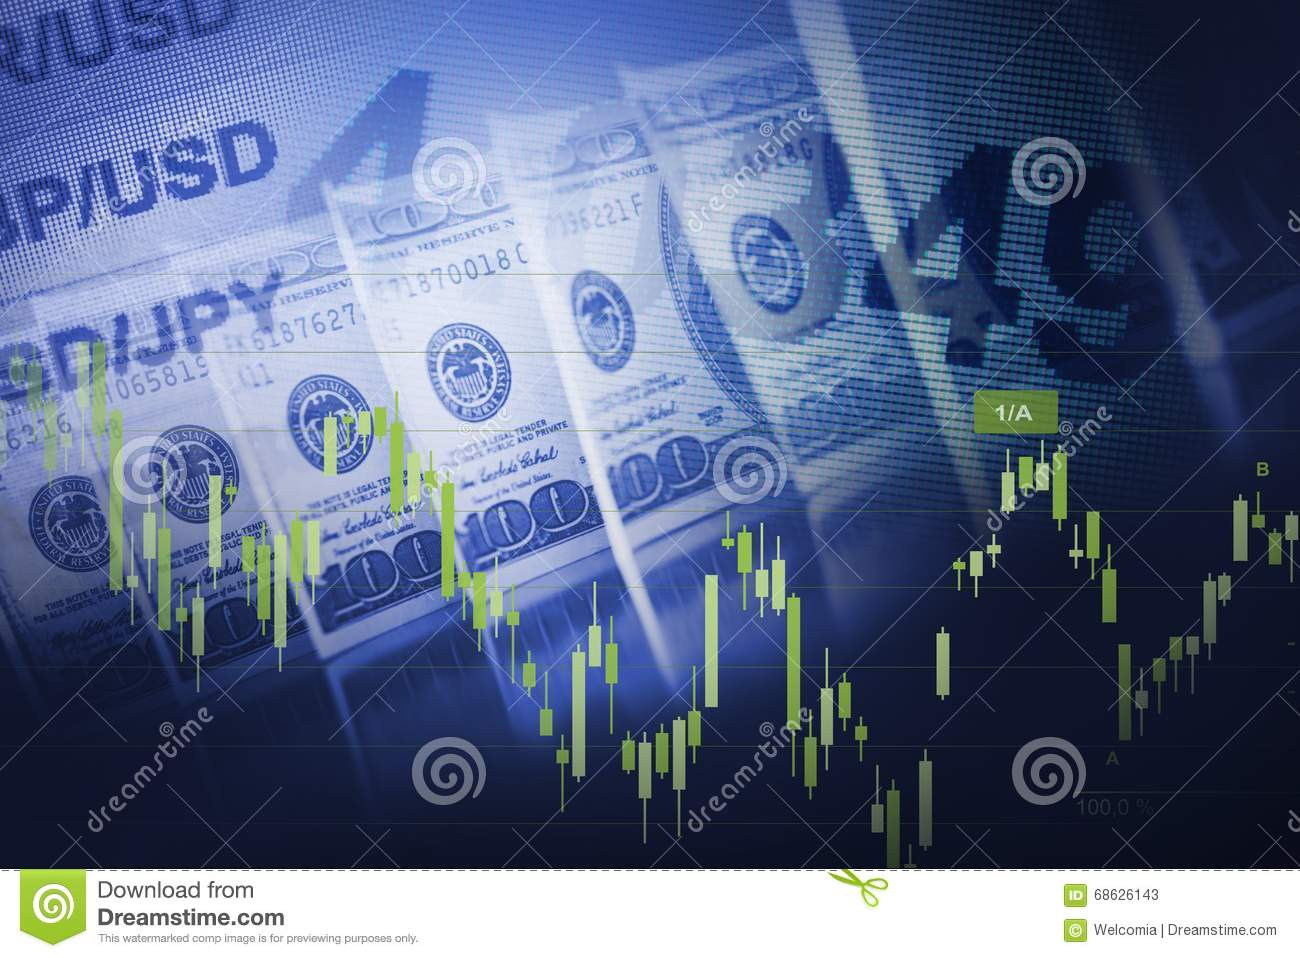 Some Benefits of Online Foreign Exchange Trading